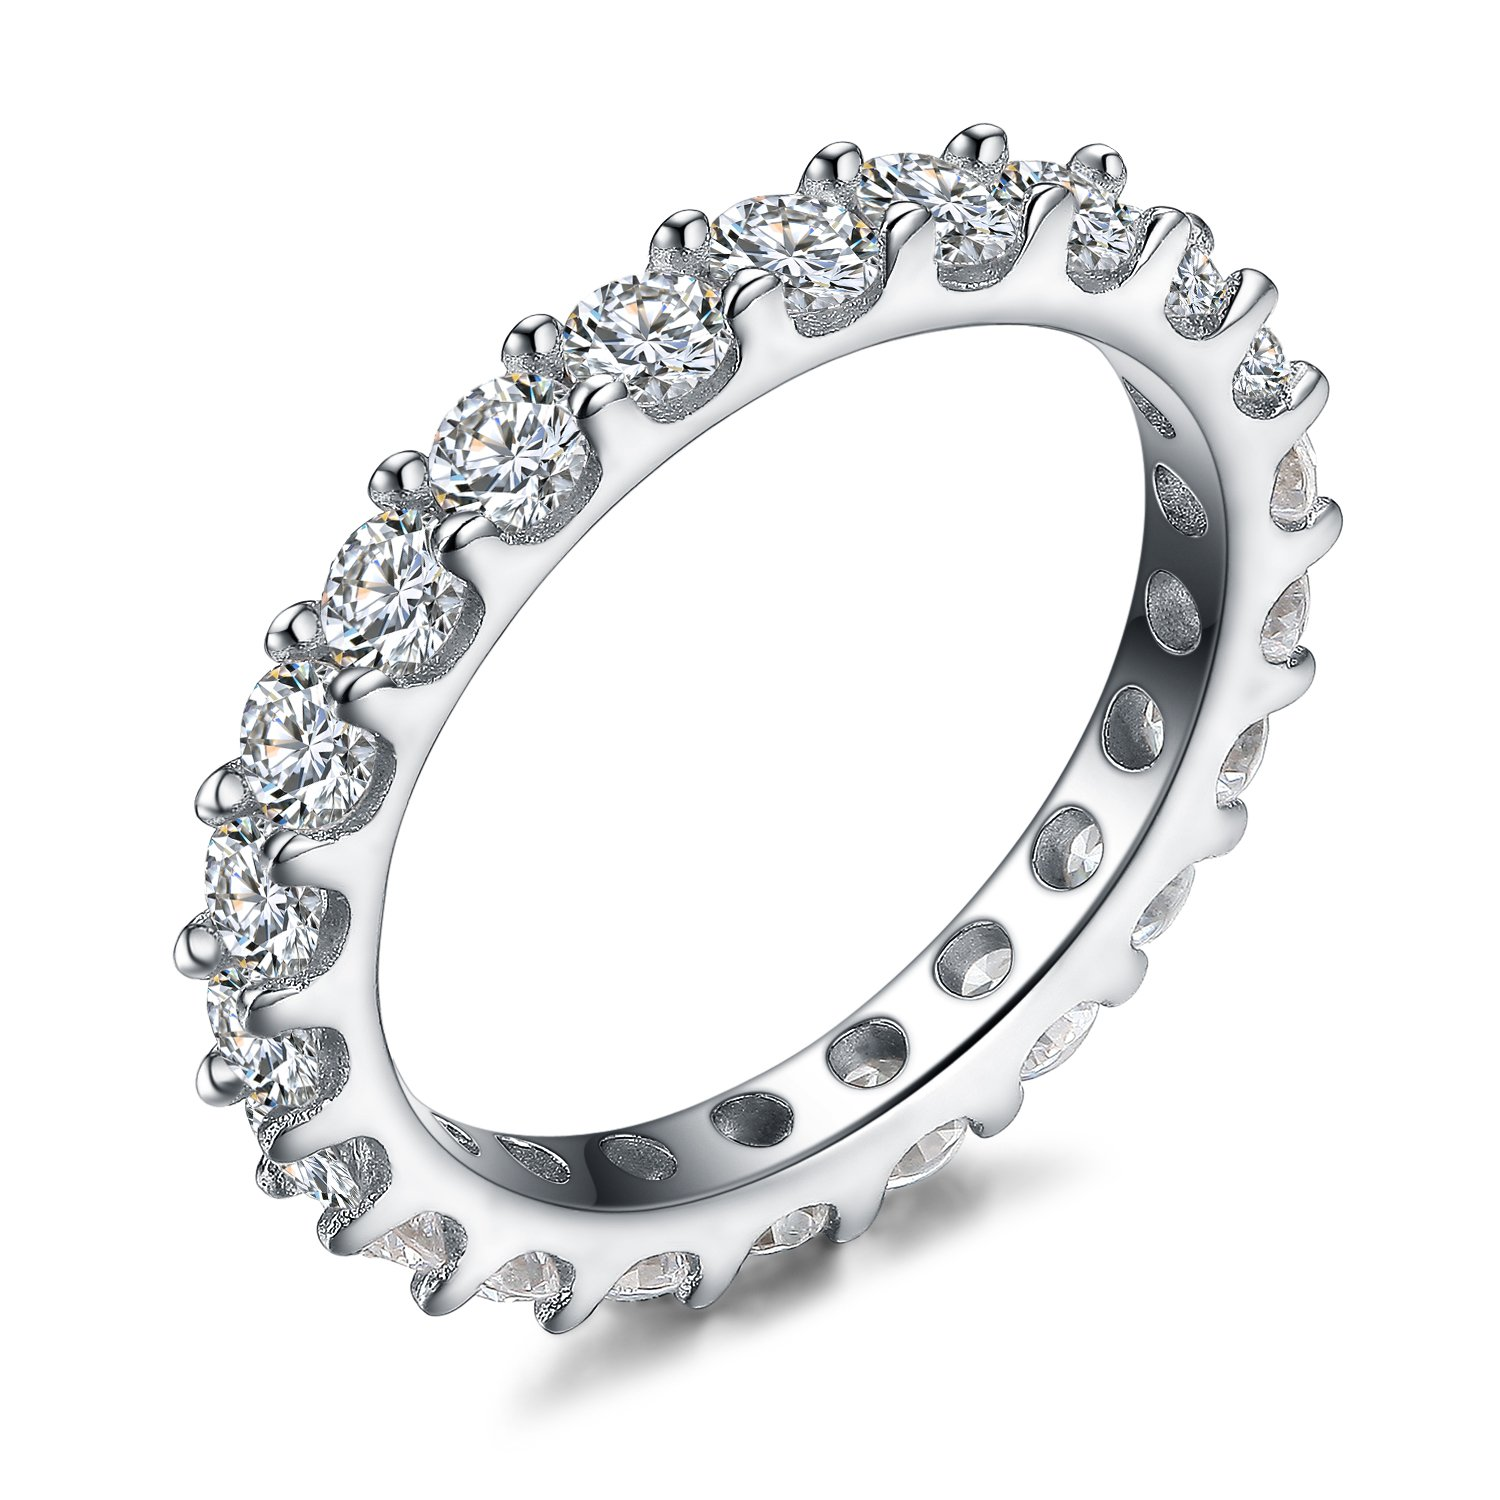 UMODE 925 Sterling Silver Eternity Ring All Around Cubic Zirconia Cz Band for Women Size 8